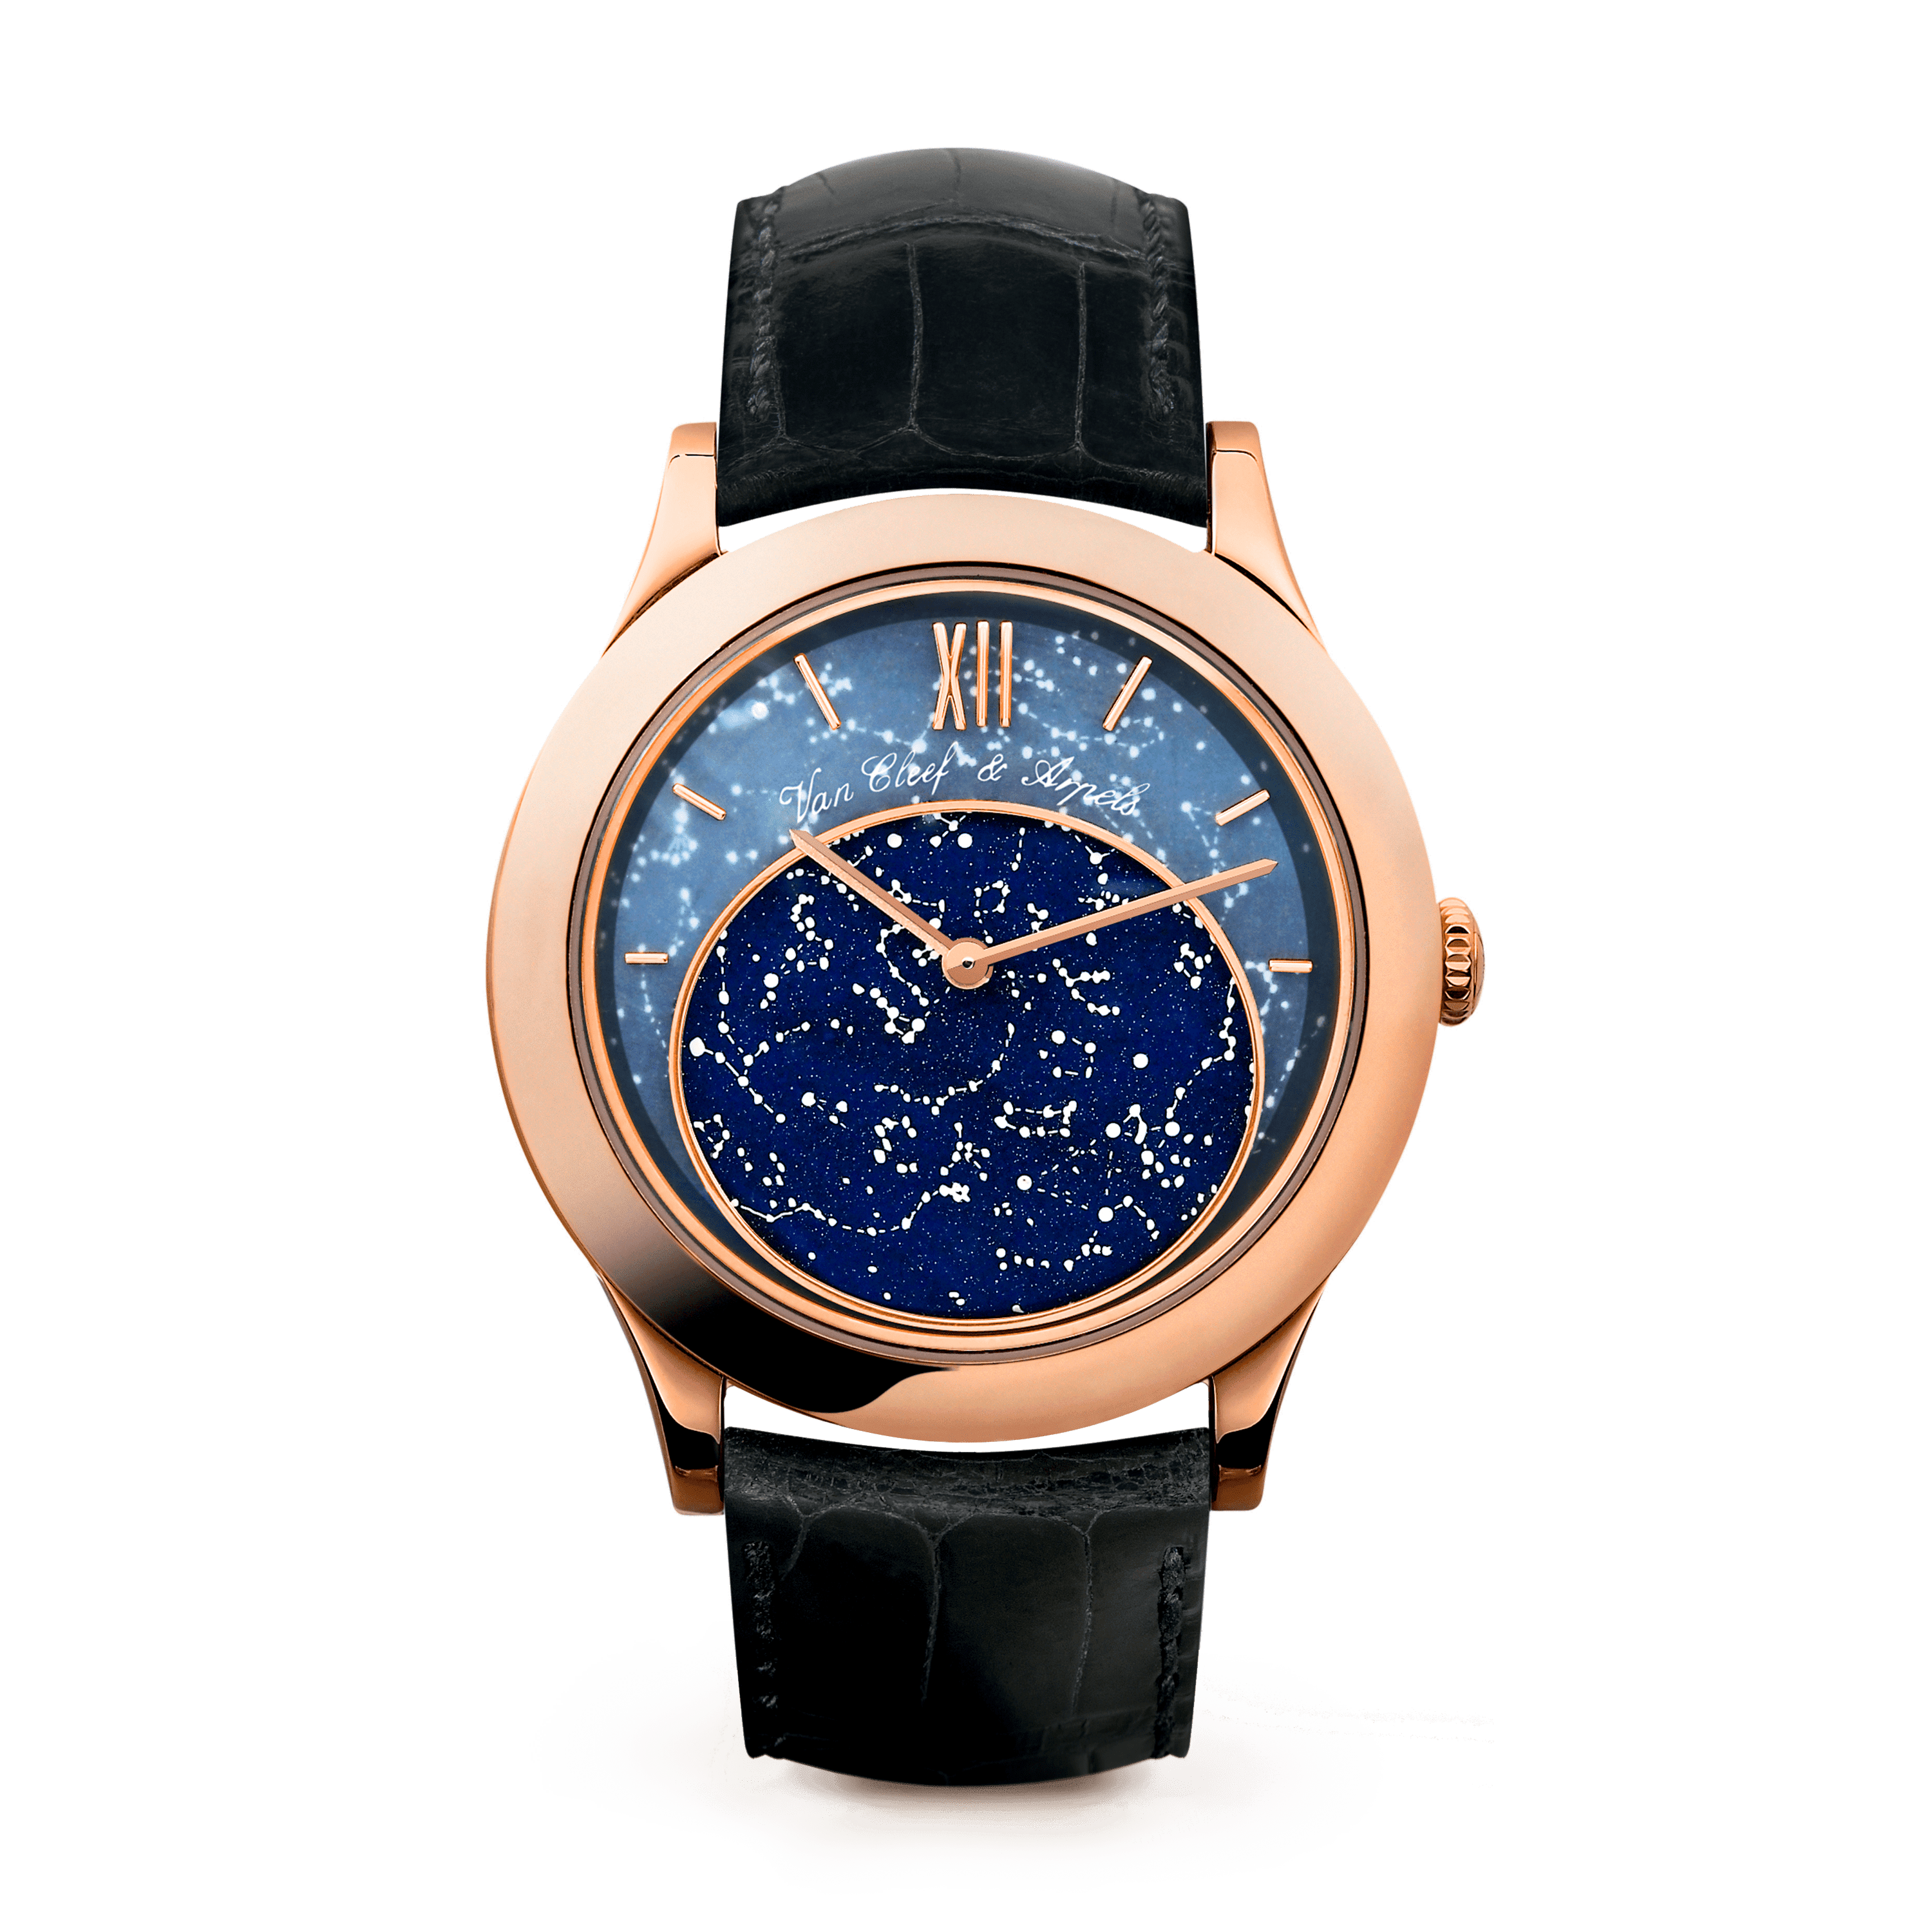 Midnight in Paris Watch,Satin-finish alligator, square scale - Front View - VCARF80700 - Van Cleef & Arpels